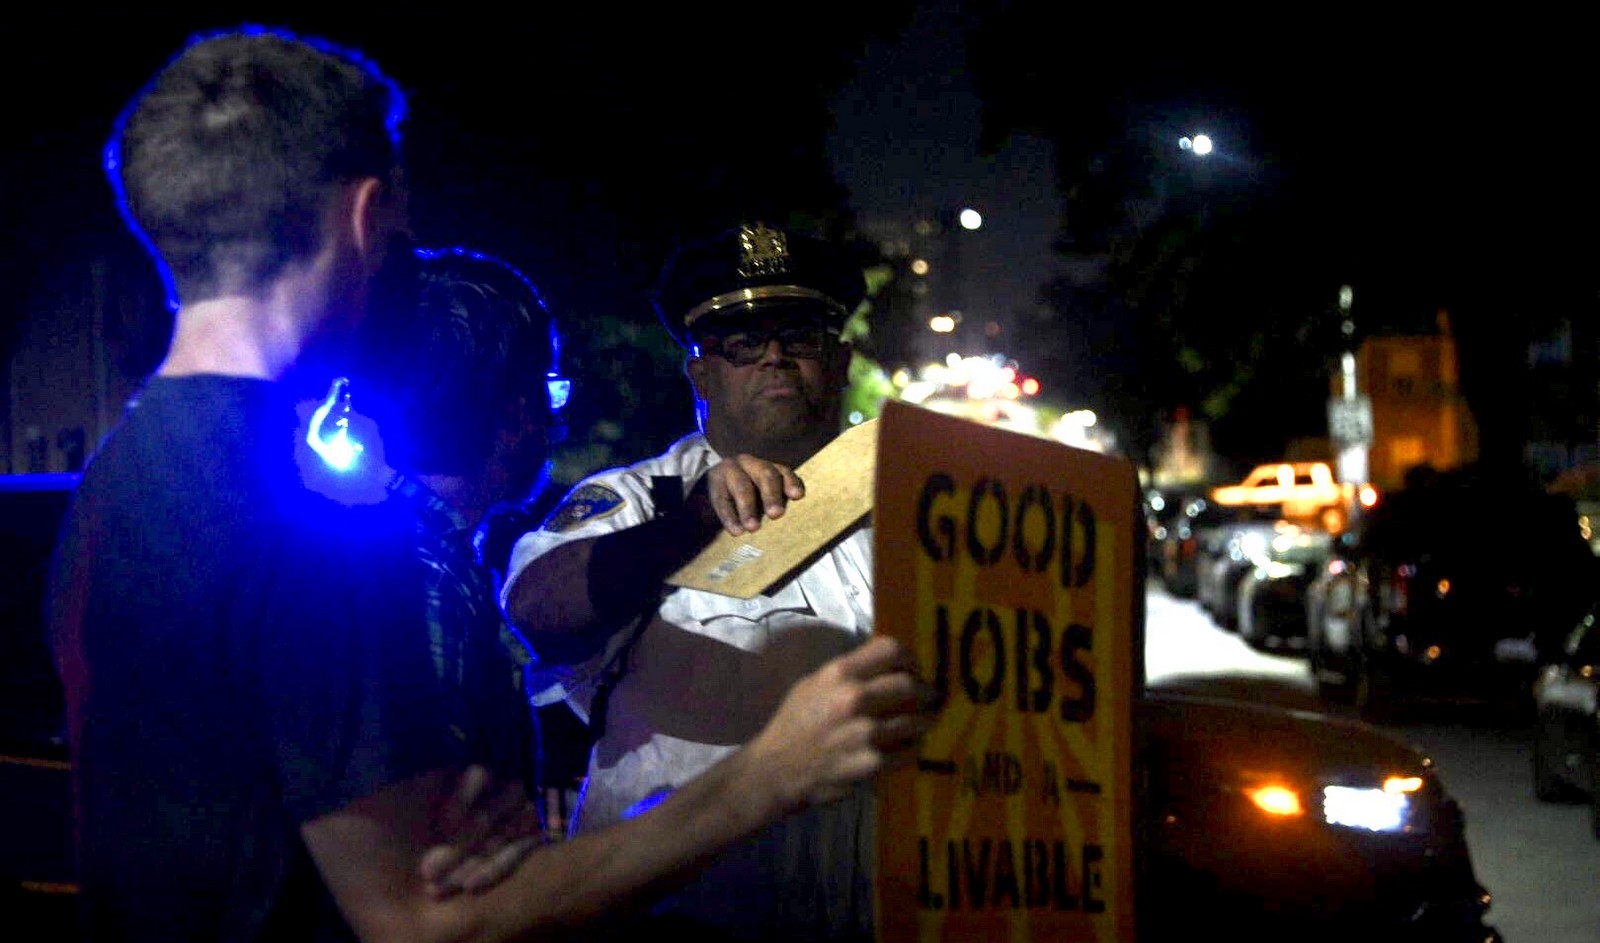 Police confront demonstrators at pre-dawn anti-incinerator protest at the home of Mayor Jack Young. (J.M. Giordano)